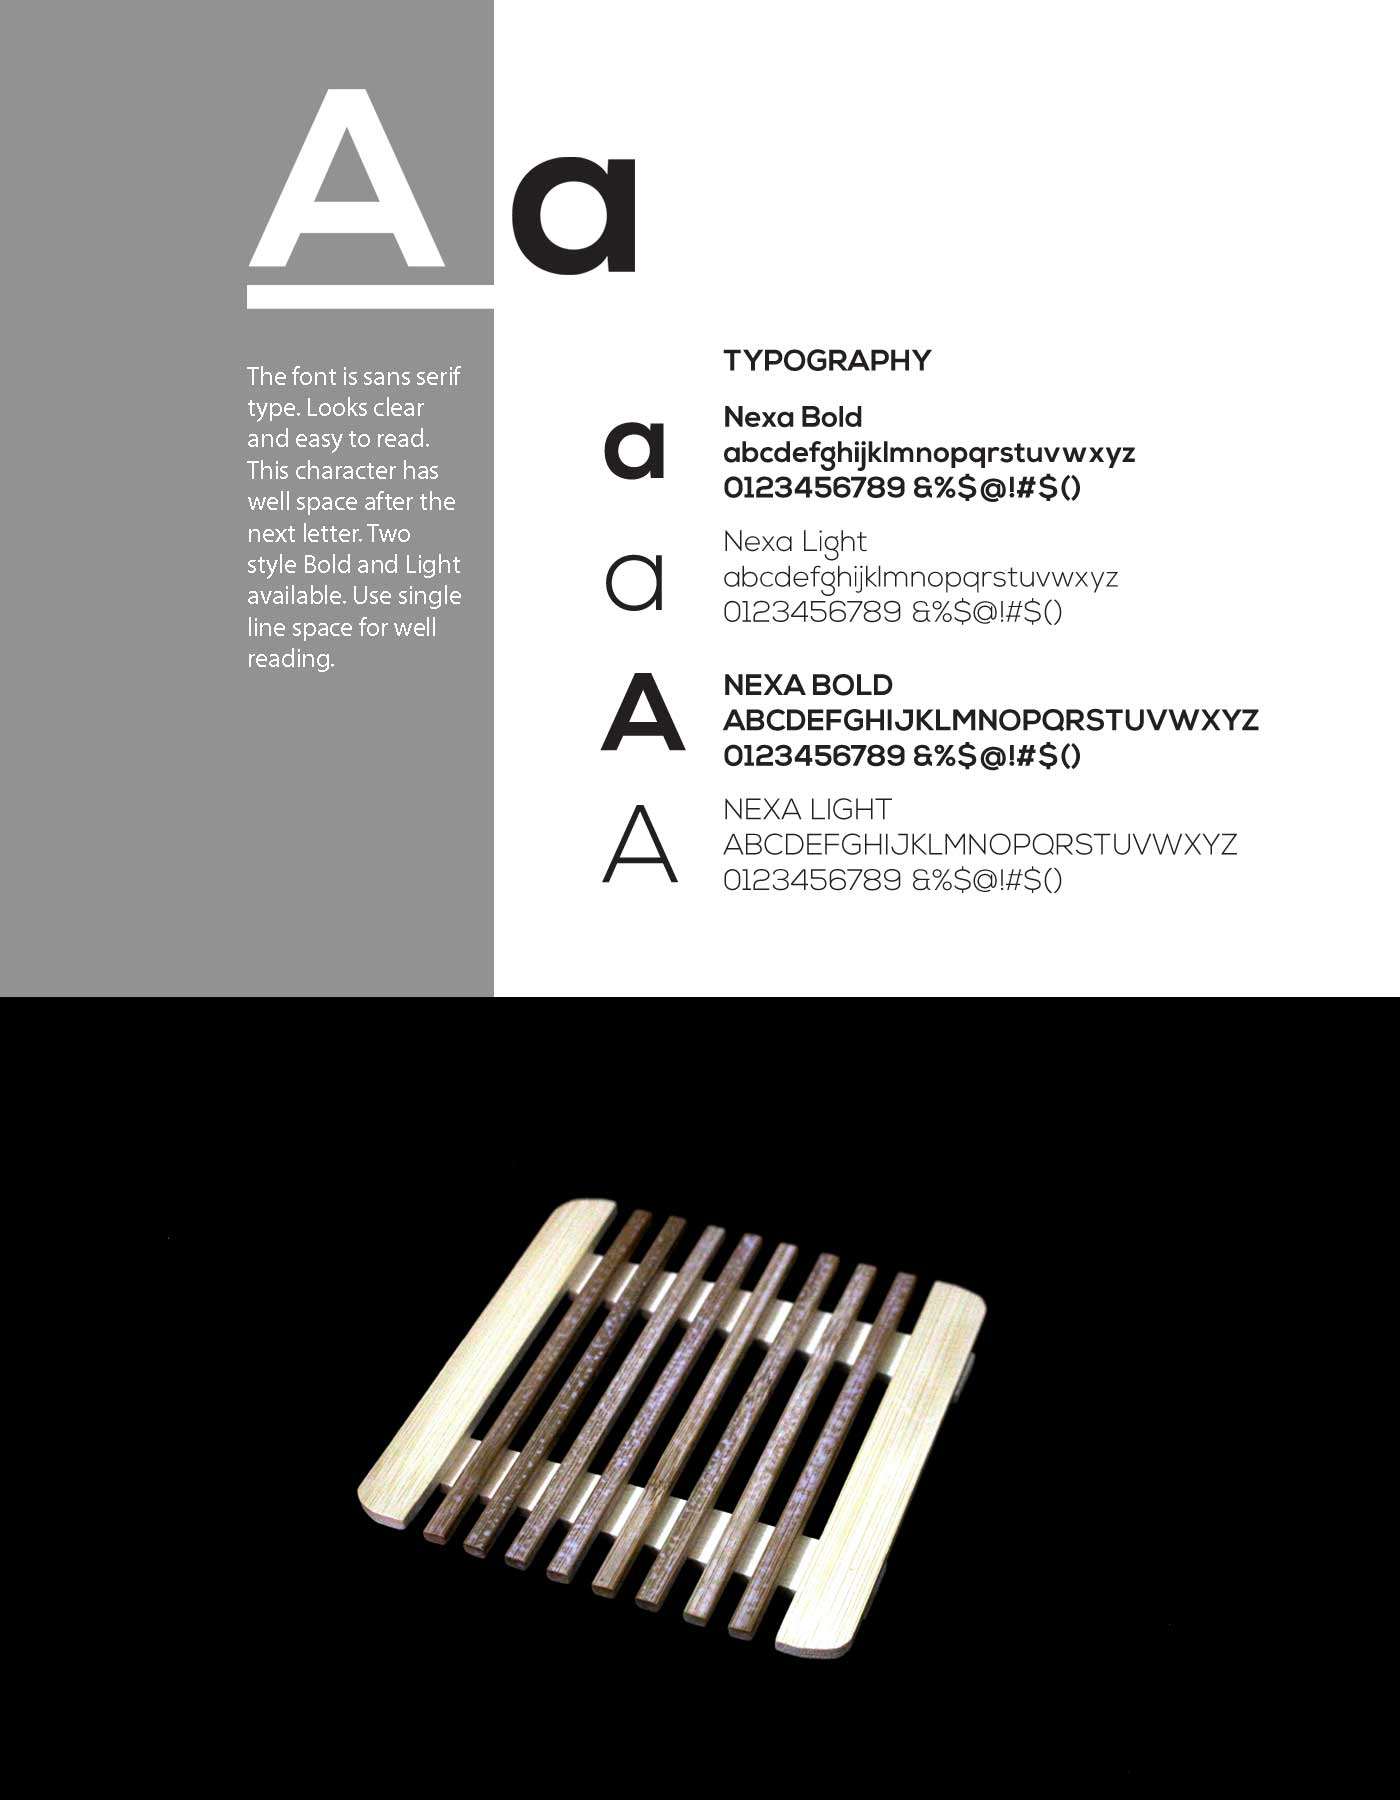 Recommended Typeface